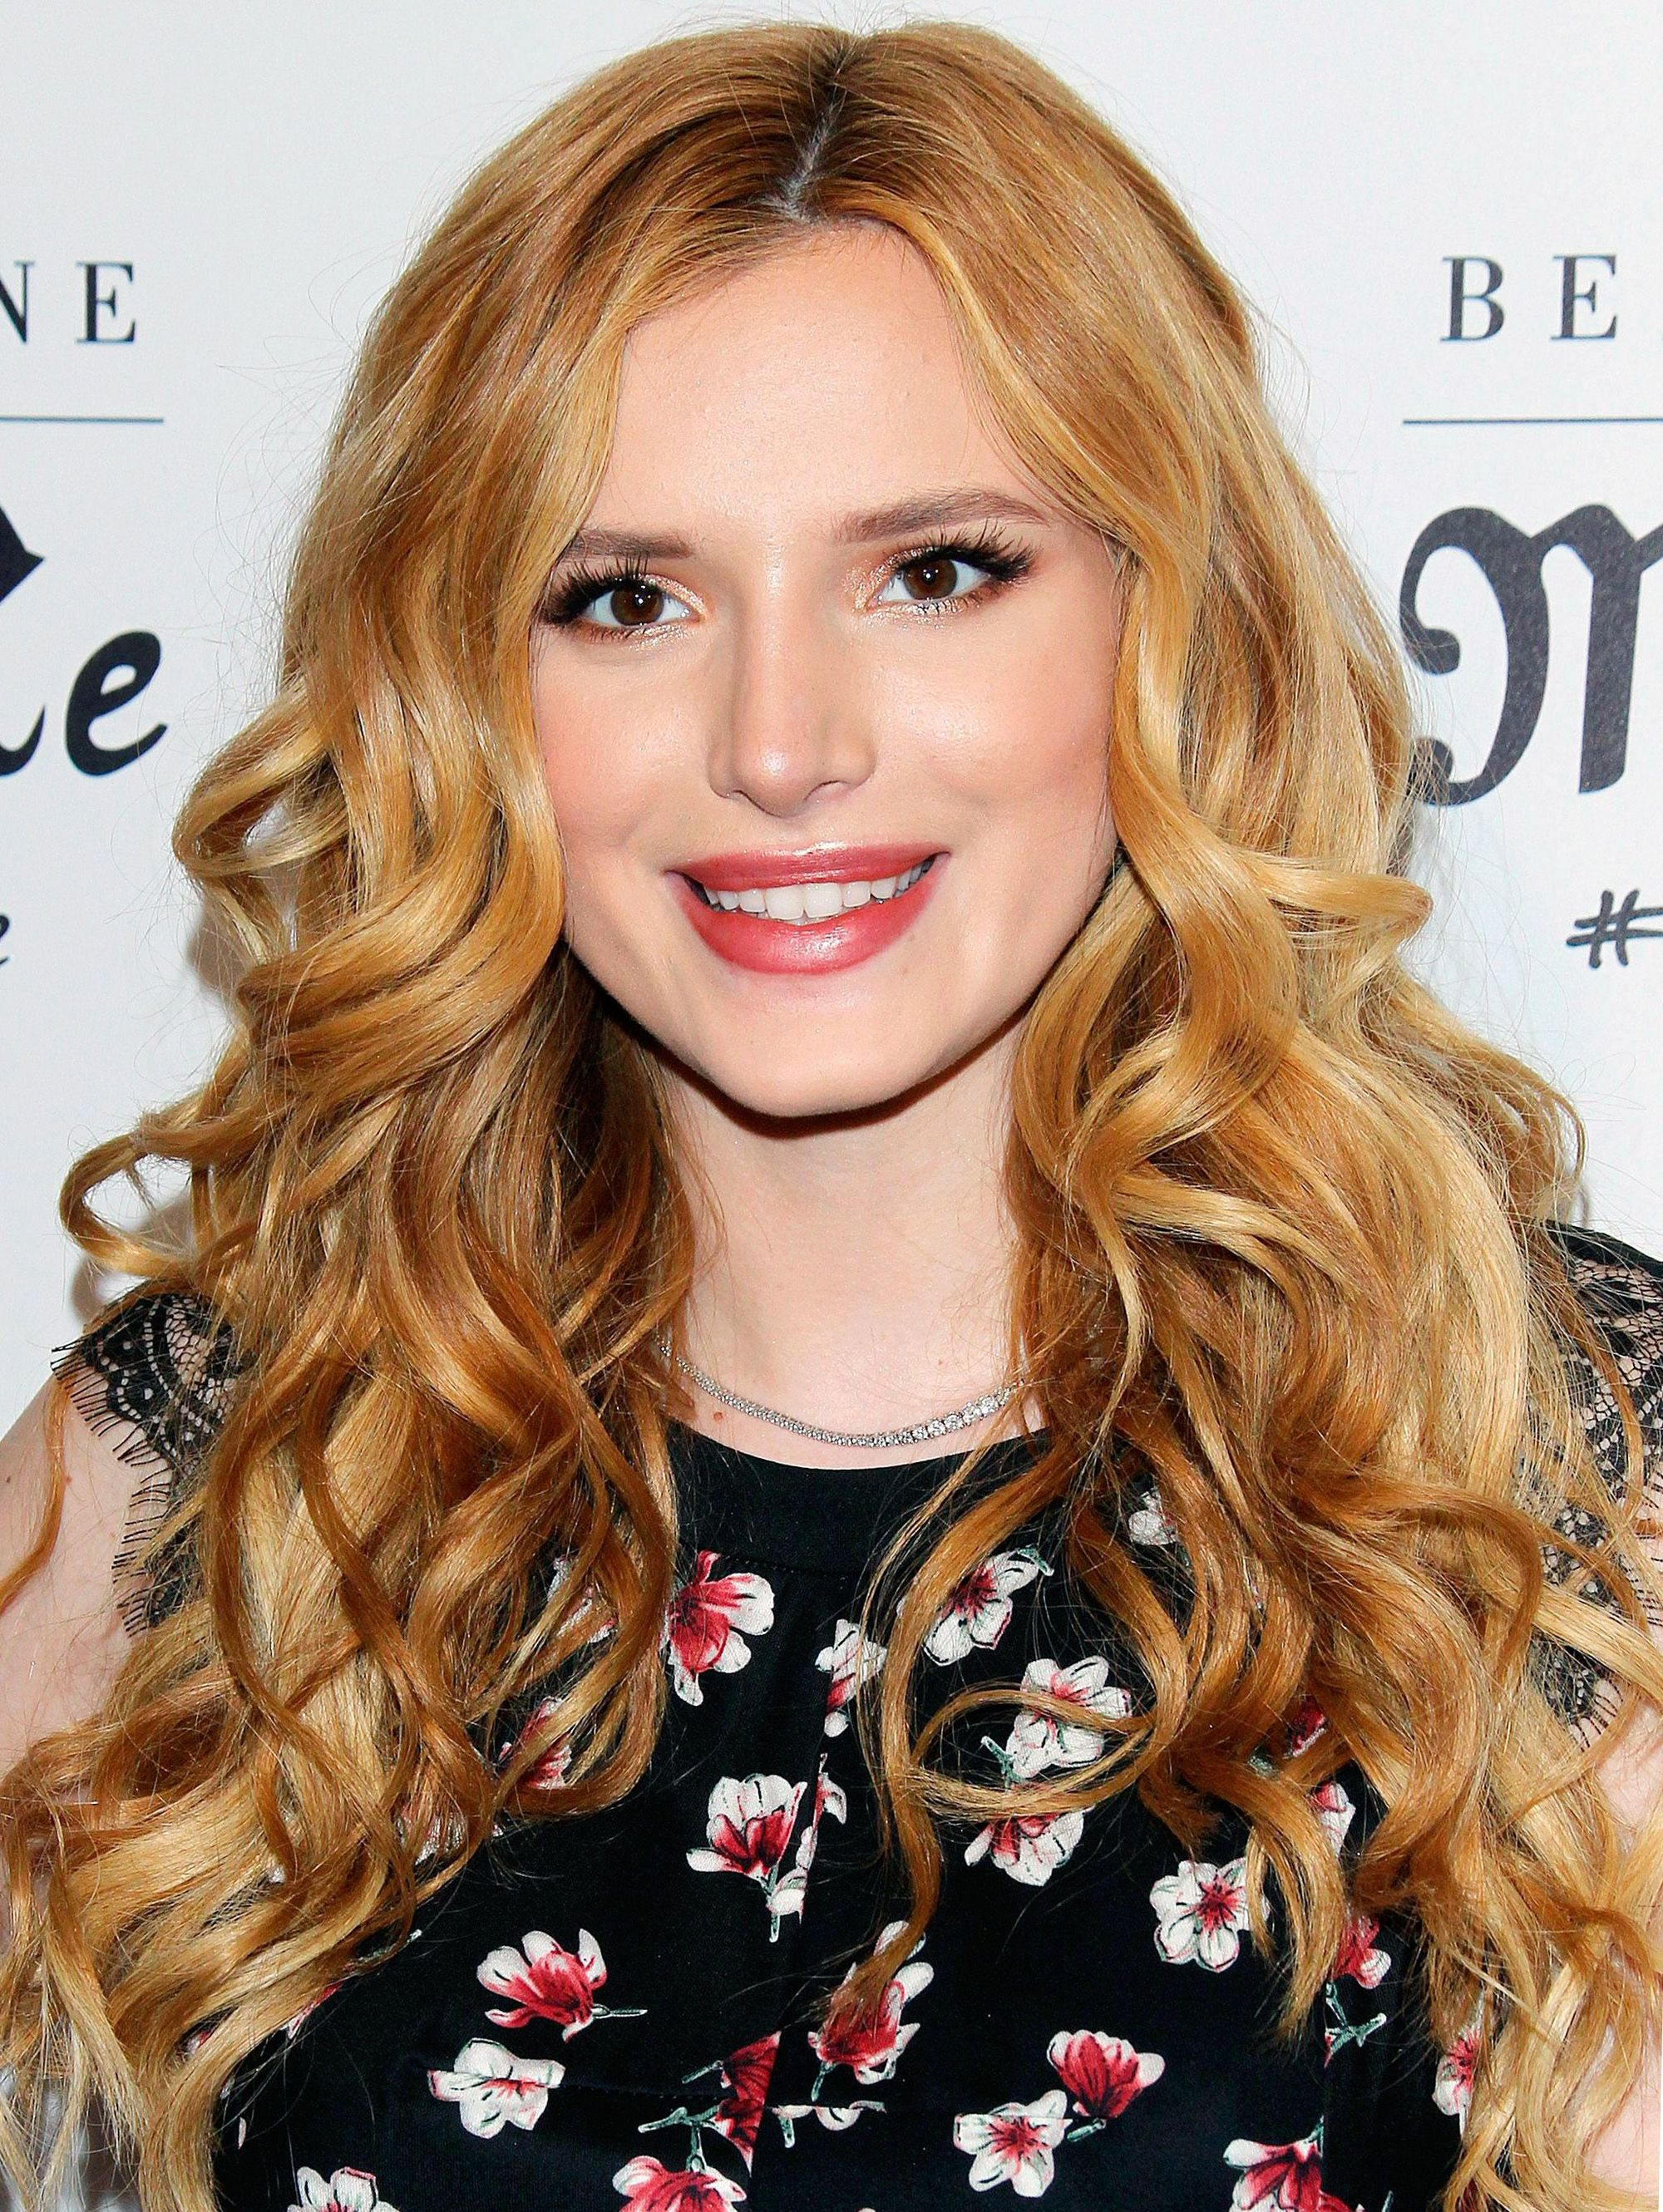 Bella Thorne - Strawberry blonde hair with highlights - curls